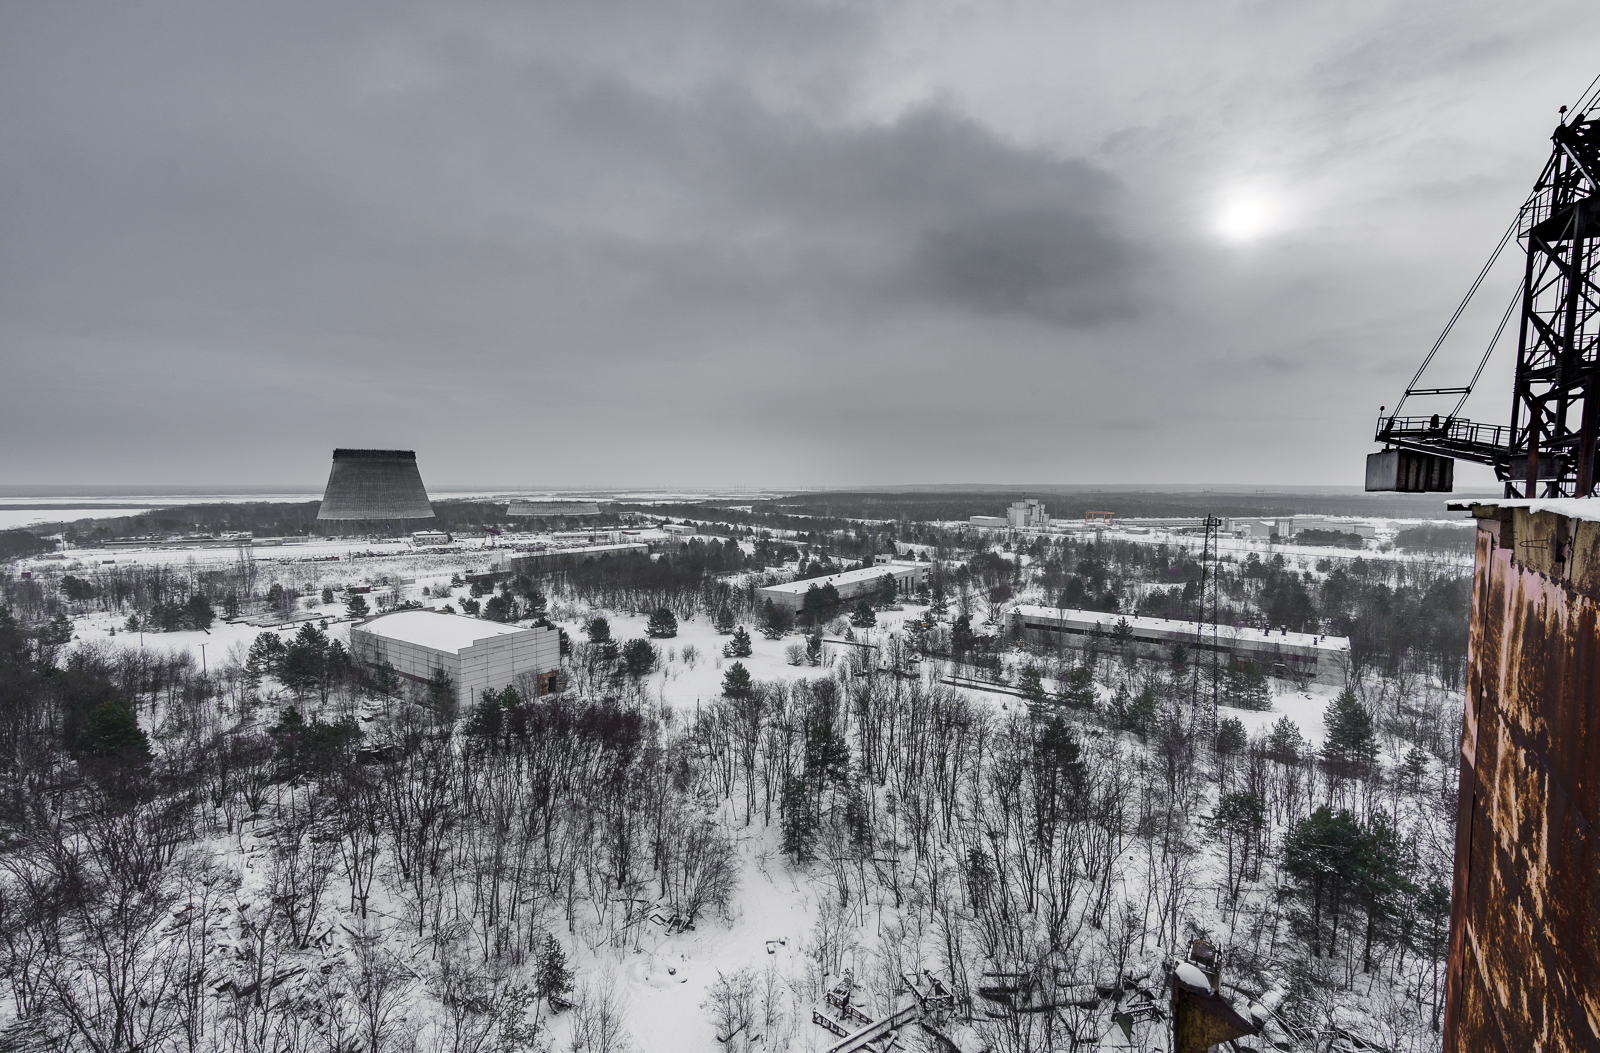 Unfinished Chernobyl Reactor 5 building in Winter